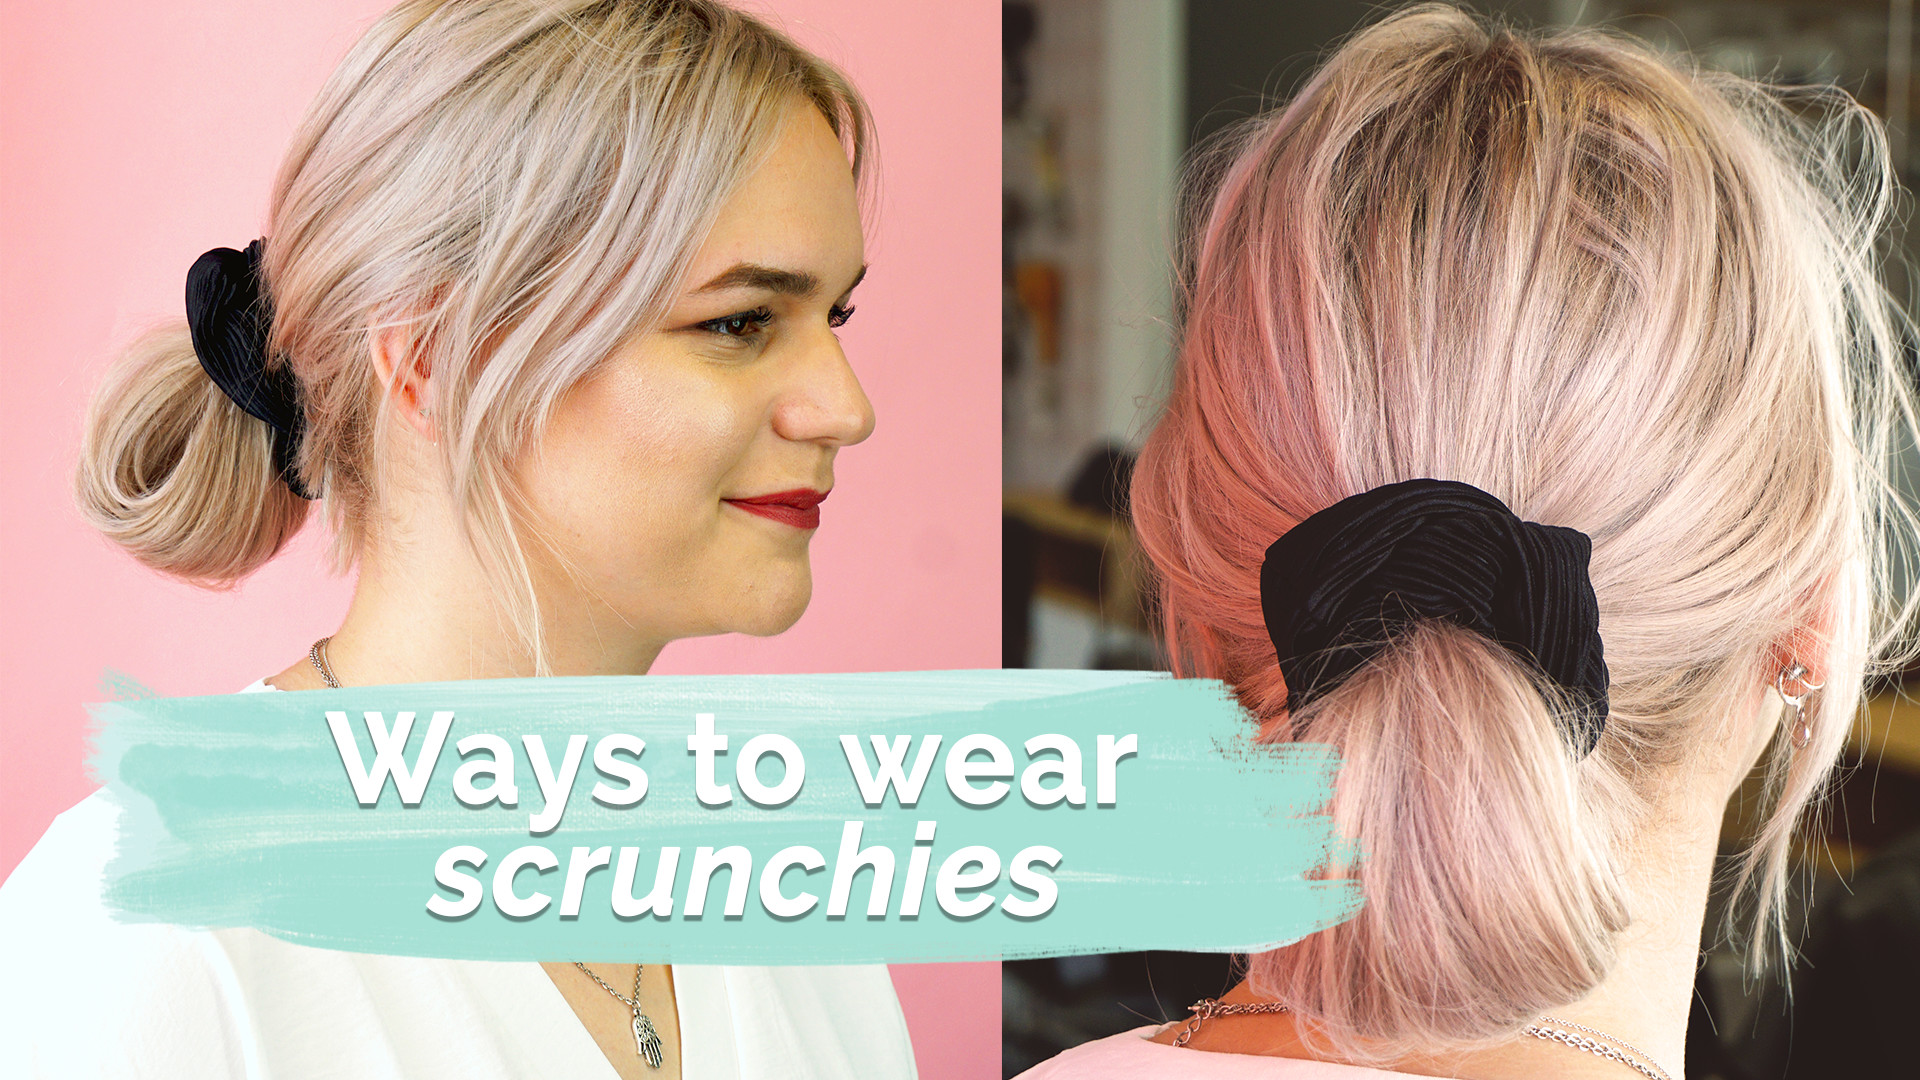 3 ways to wear scrunchies